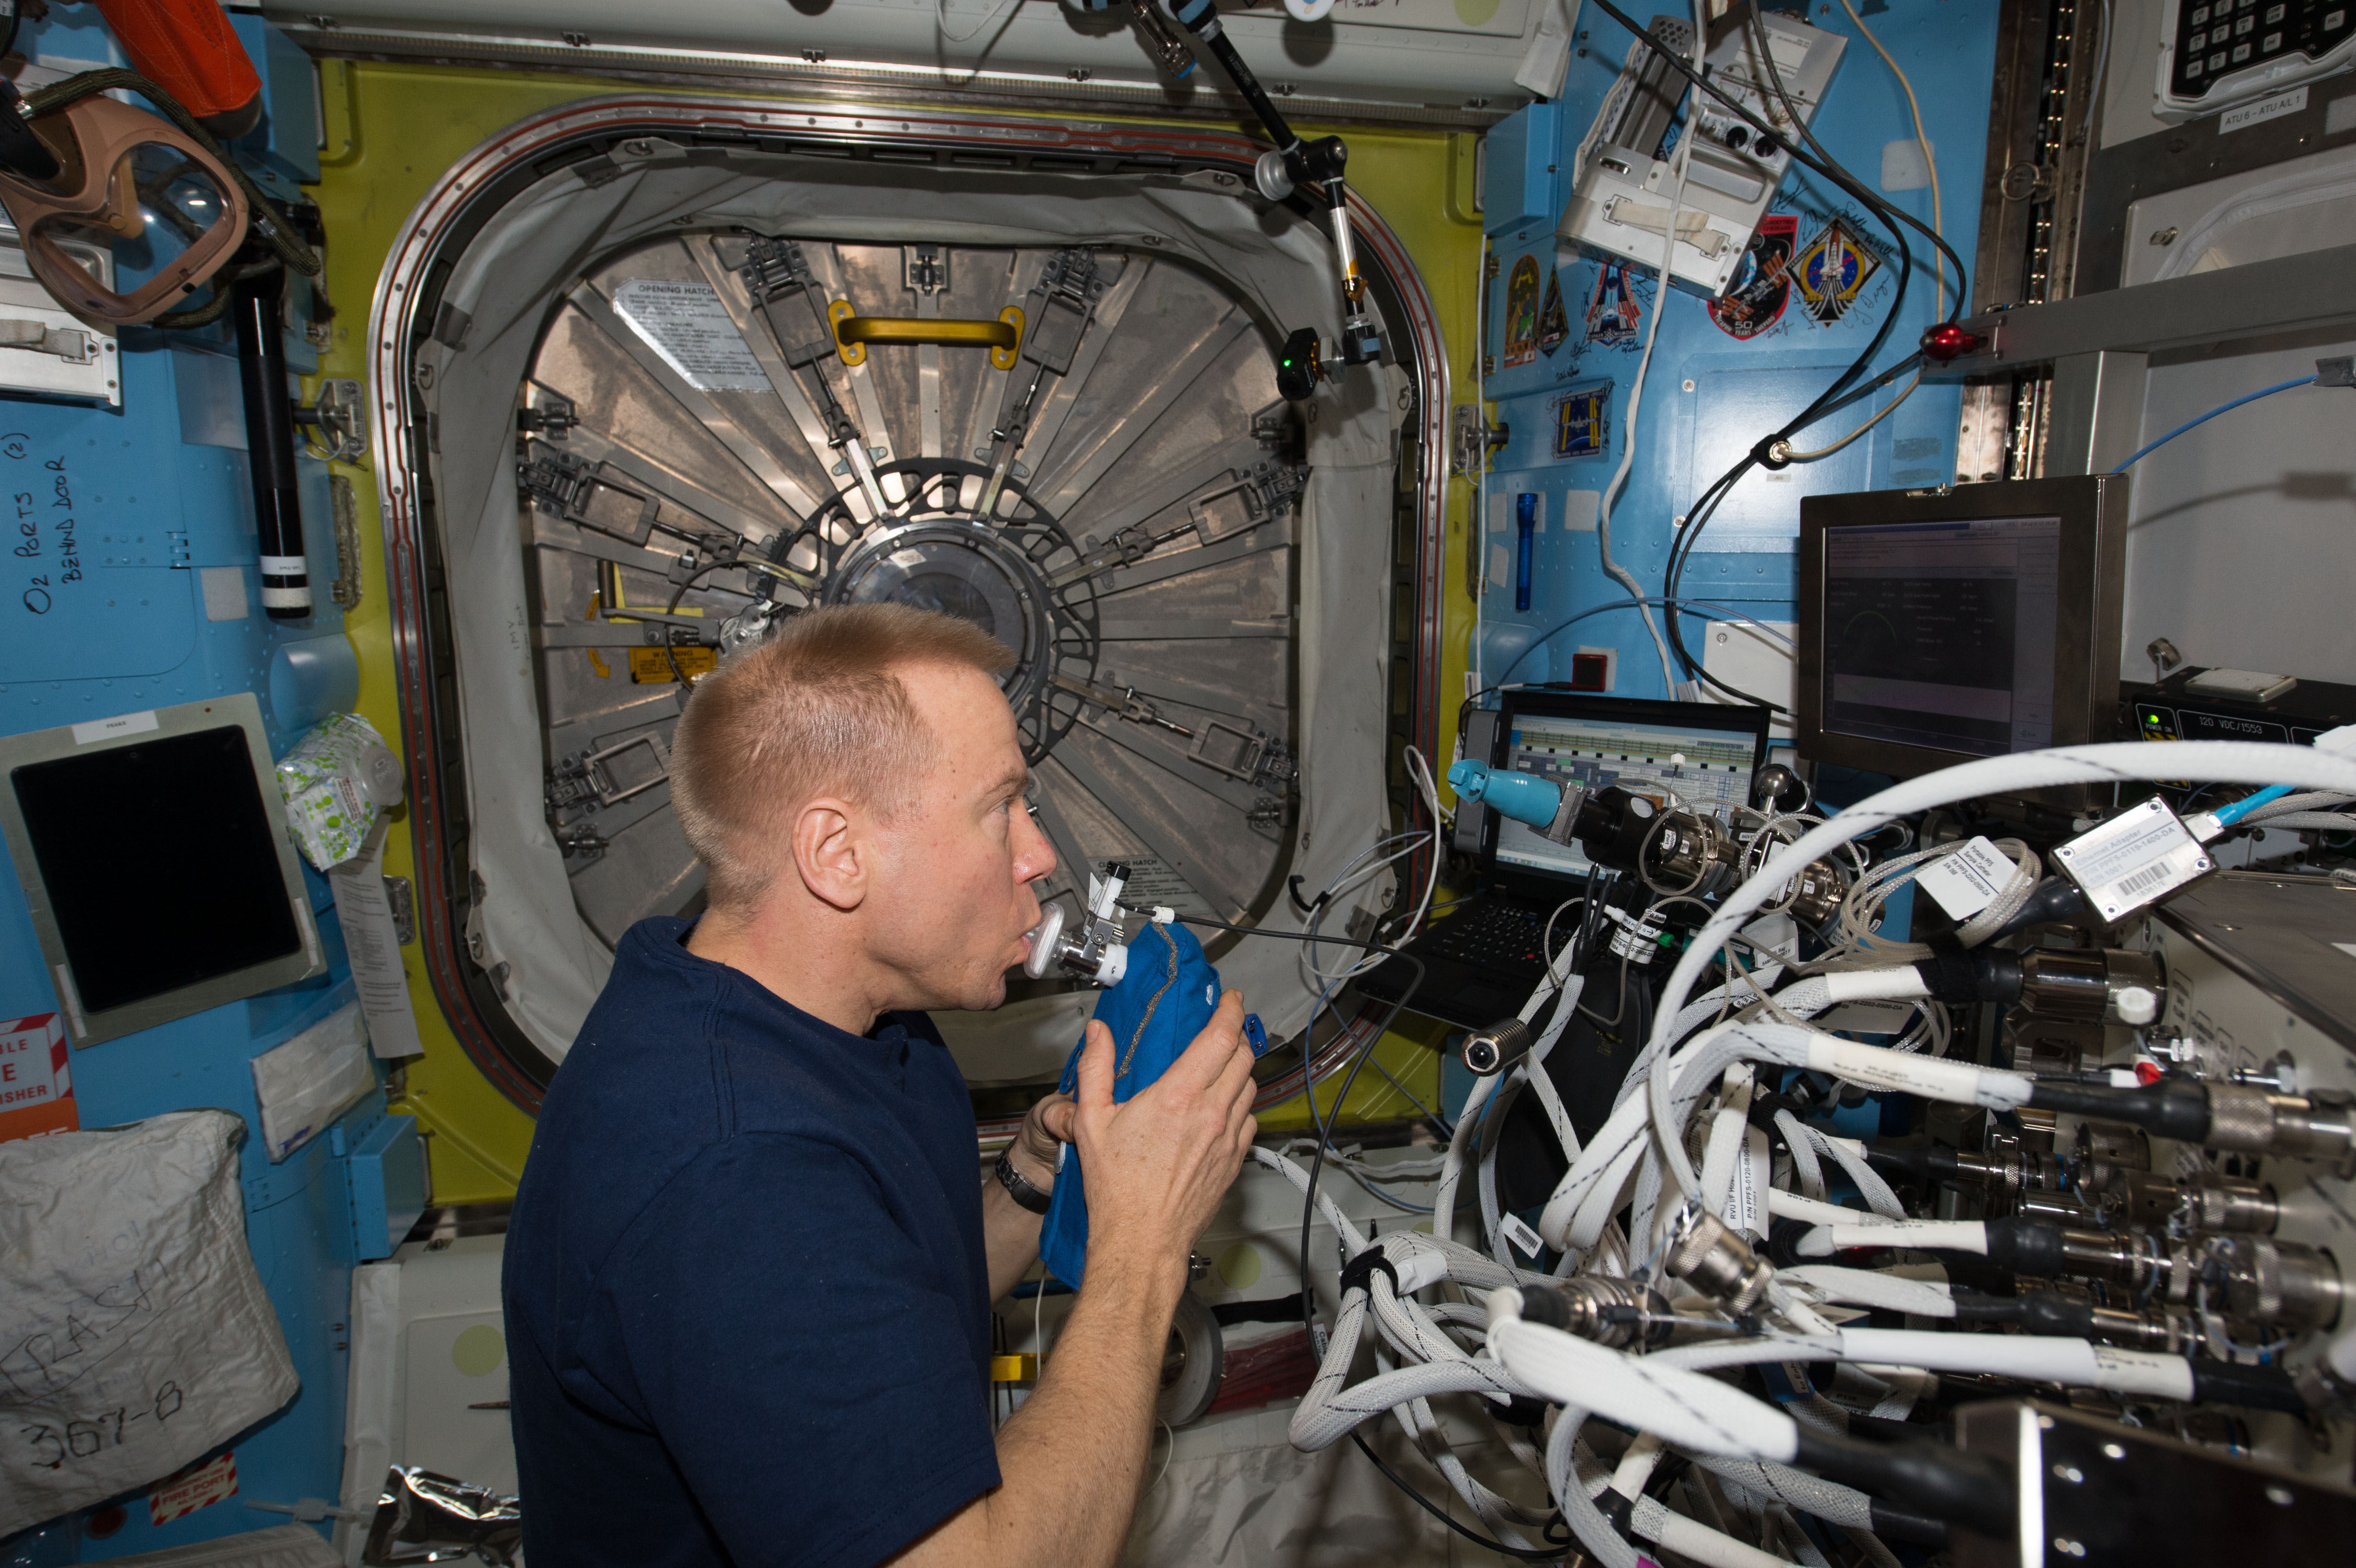 File Iss 46 Tim Kopra With Gasyzer In The Quest